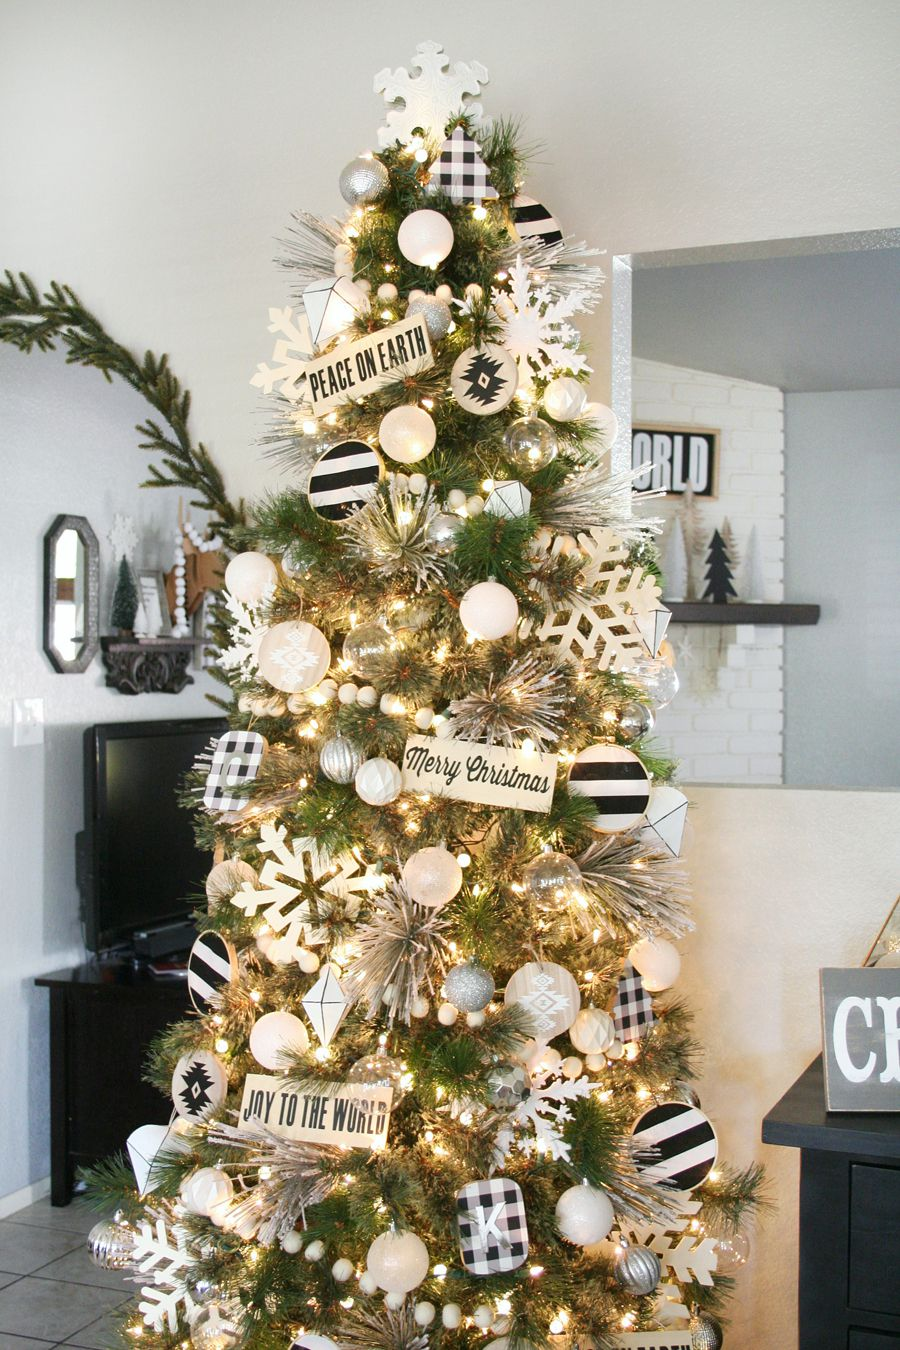 black-and-white Christmas tree